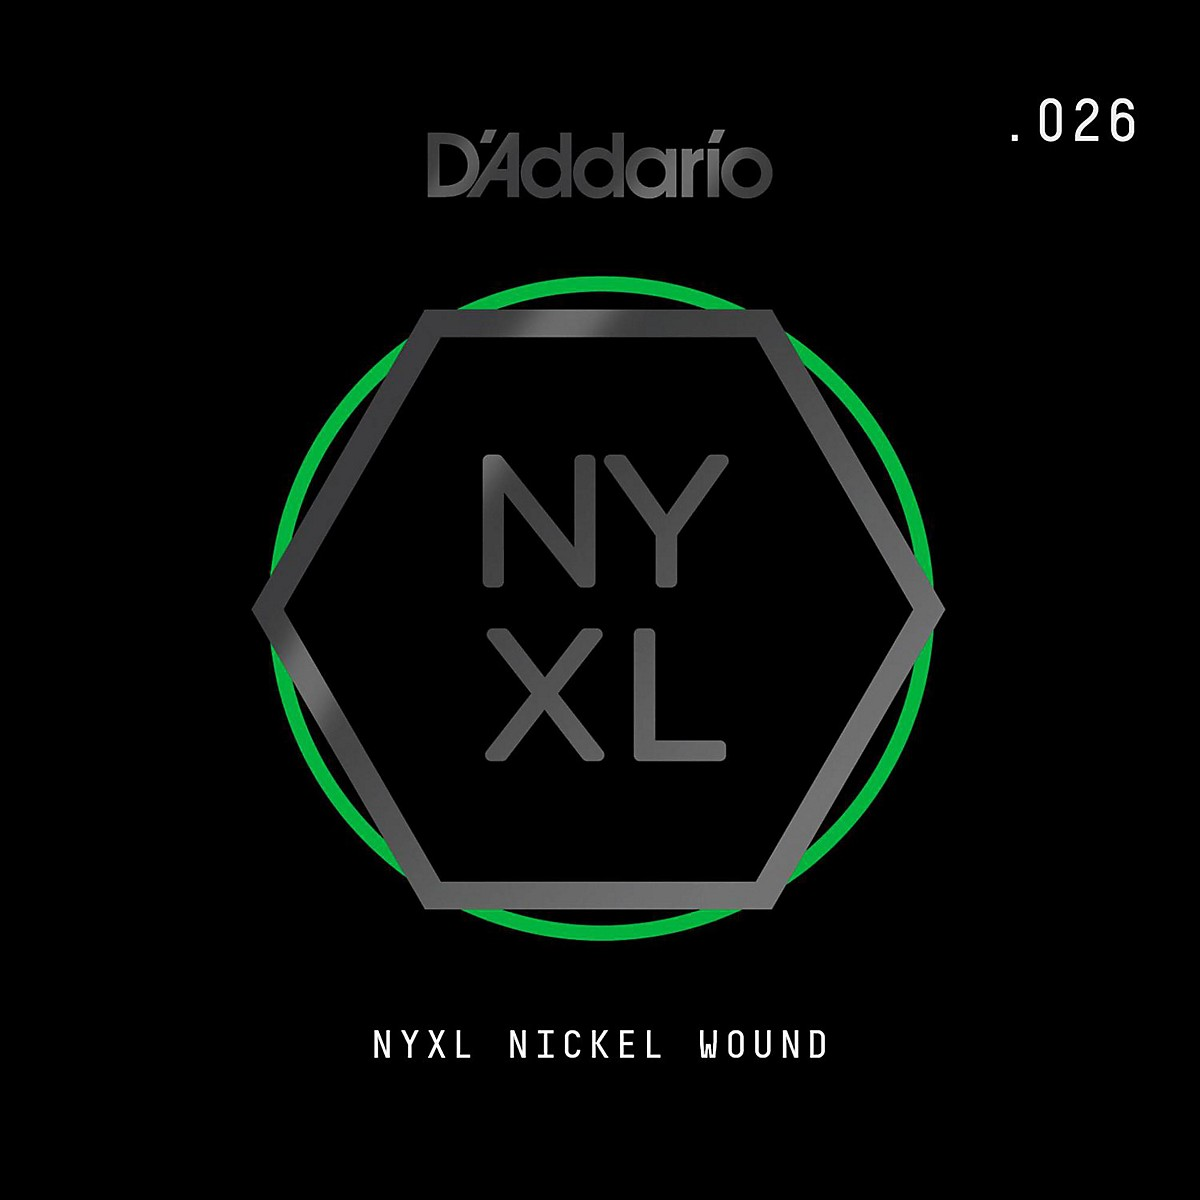 D'Addario NYNW026 NYXL Nickel Wound Electric Guitar Single String, .026